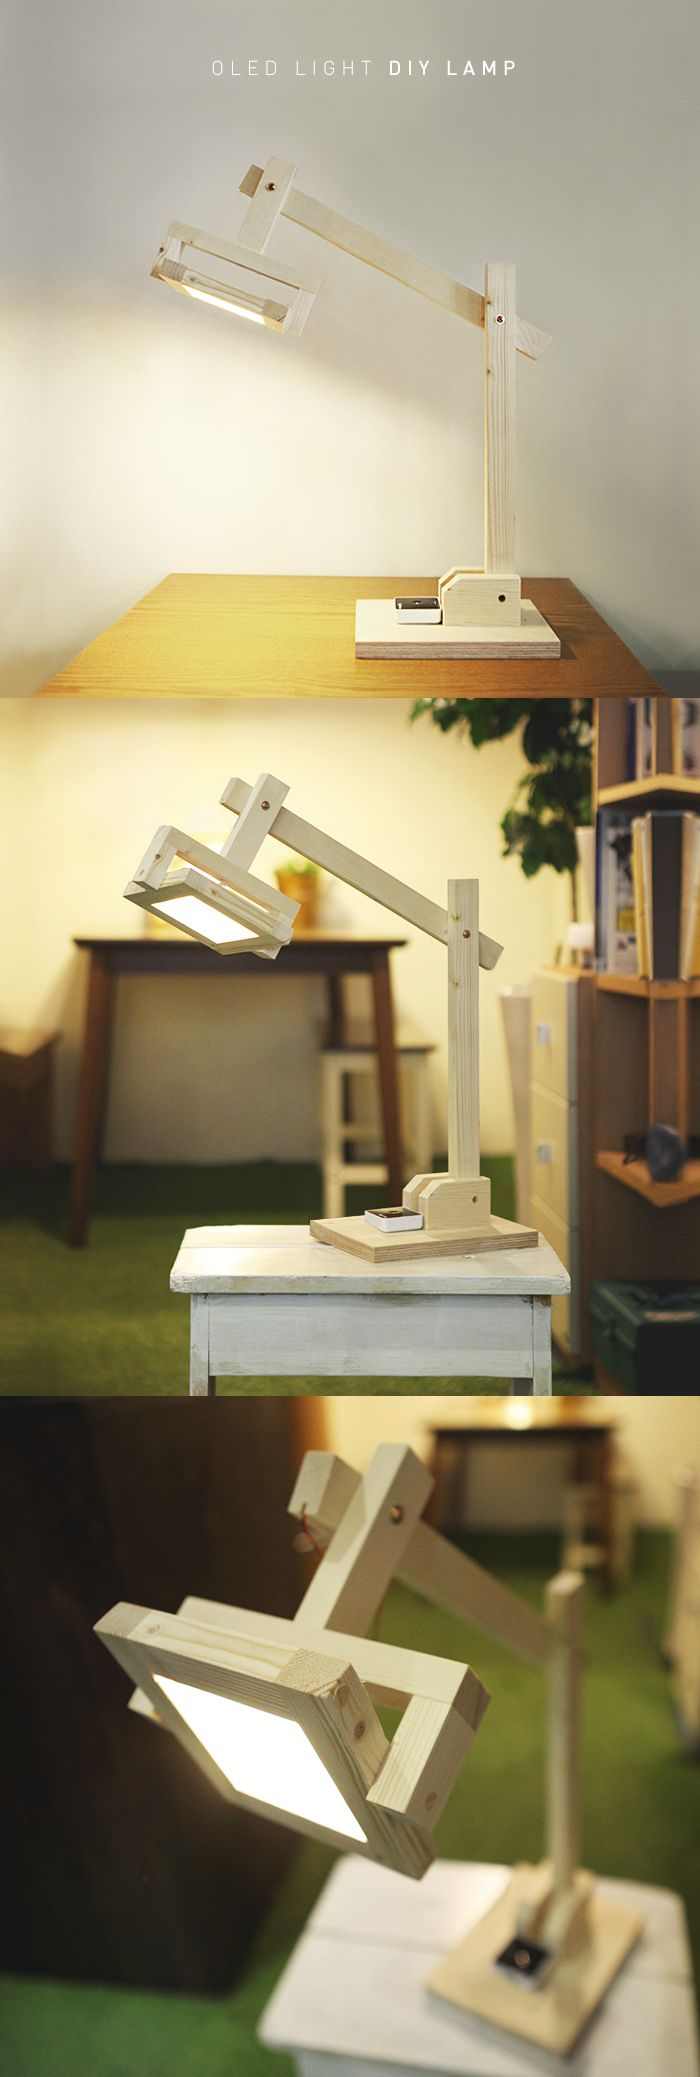 A wooden task lamp made with OLED light 100x100mm DIY Kit. To order an OLED panel, please contact Organic Lights at http://www.organic-lights.com/en/lg-display-do-it-yourself-kit.html